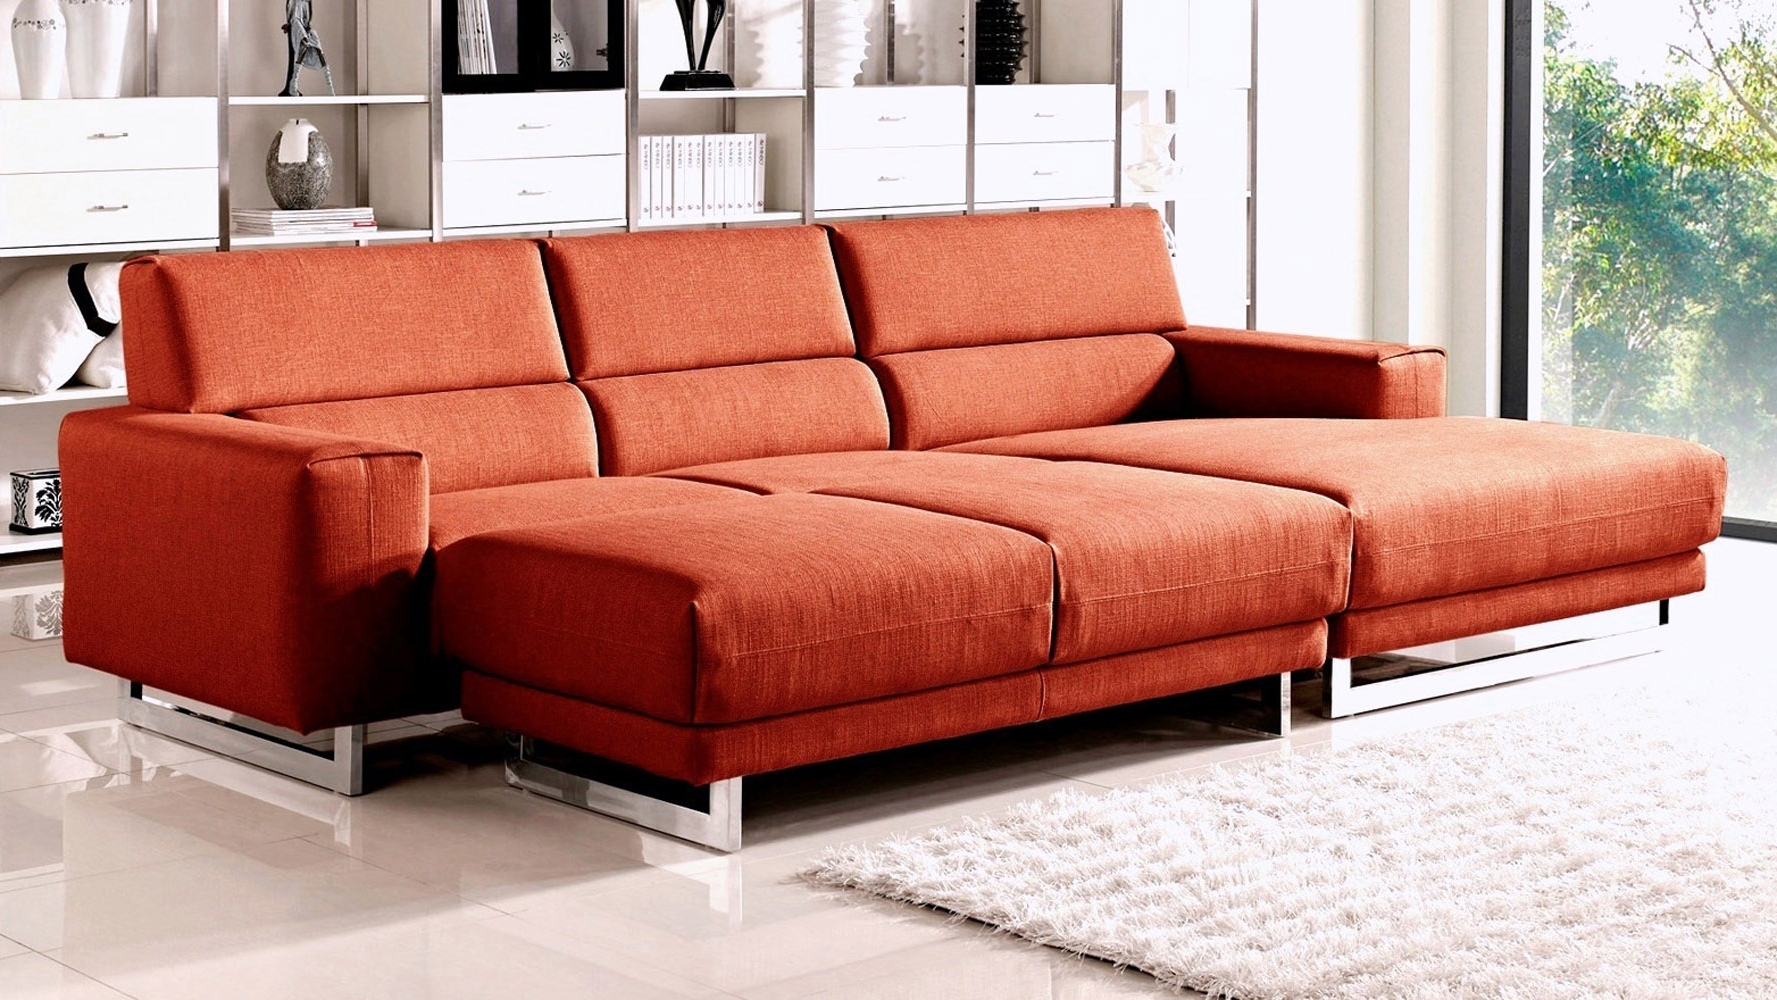 Lazy Boy Sectional Reviews Sectional Sofas With Recliners Sam's With Most Recent Sams Club Sectional Sofas (View 5 of 15)